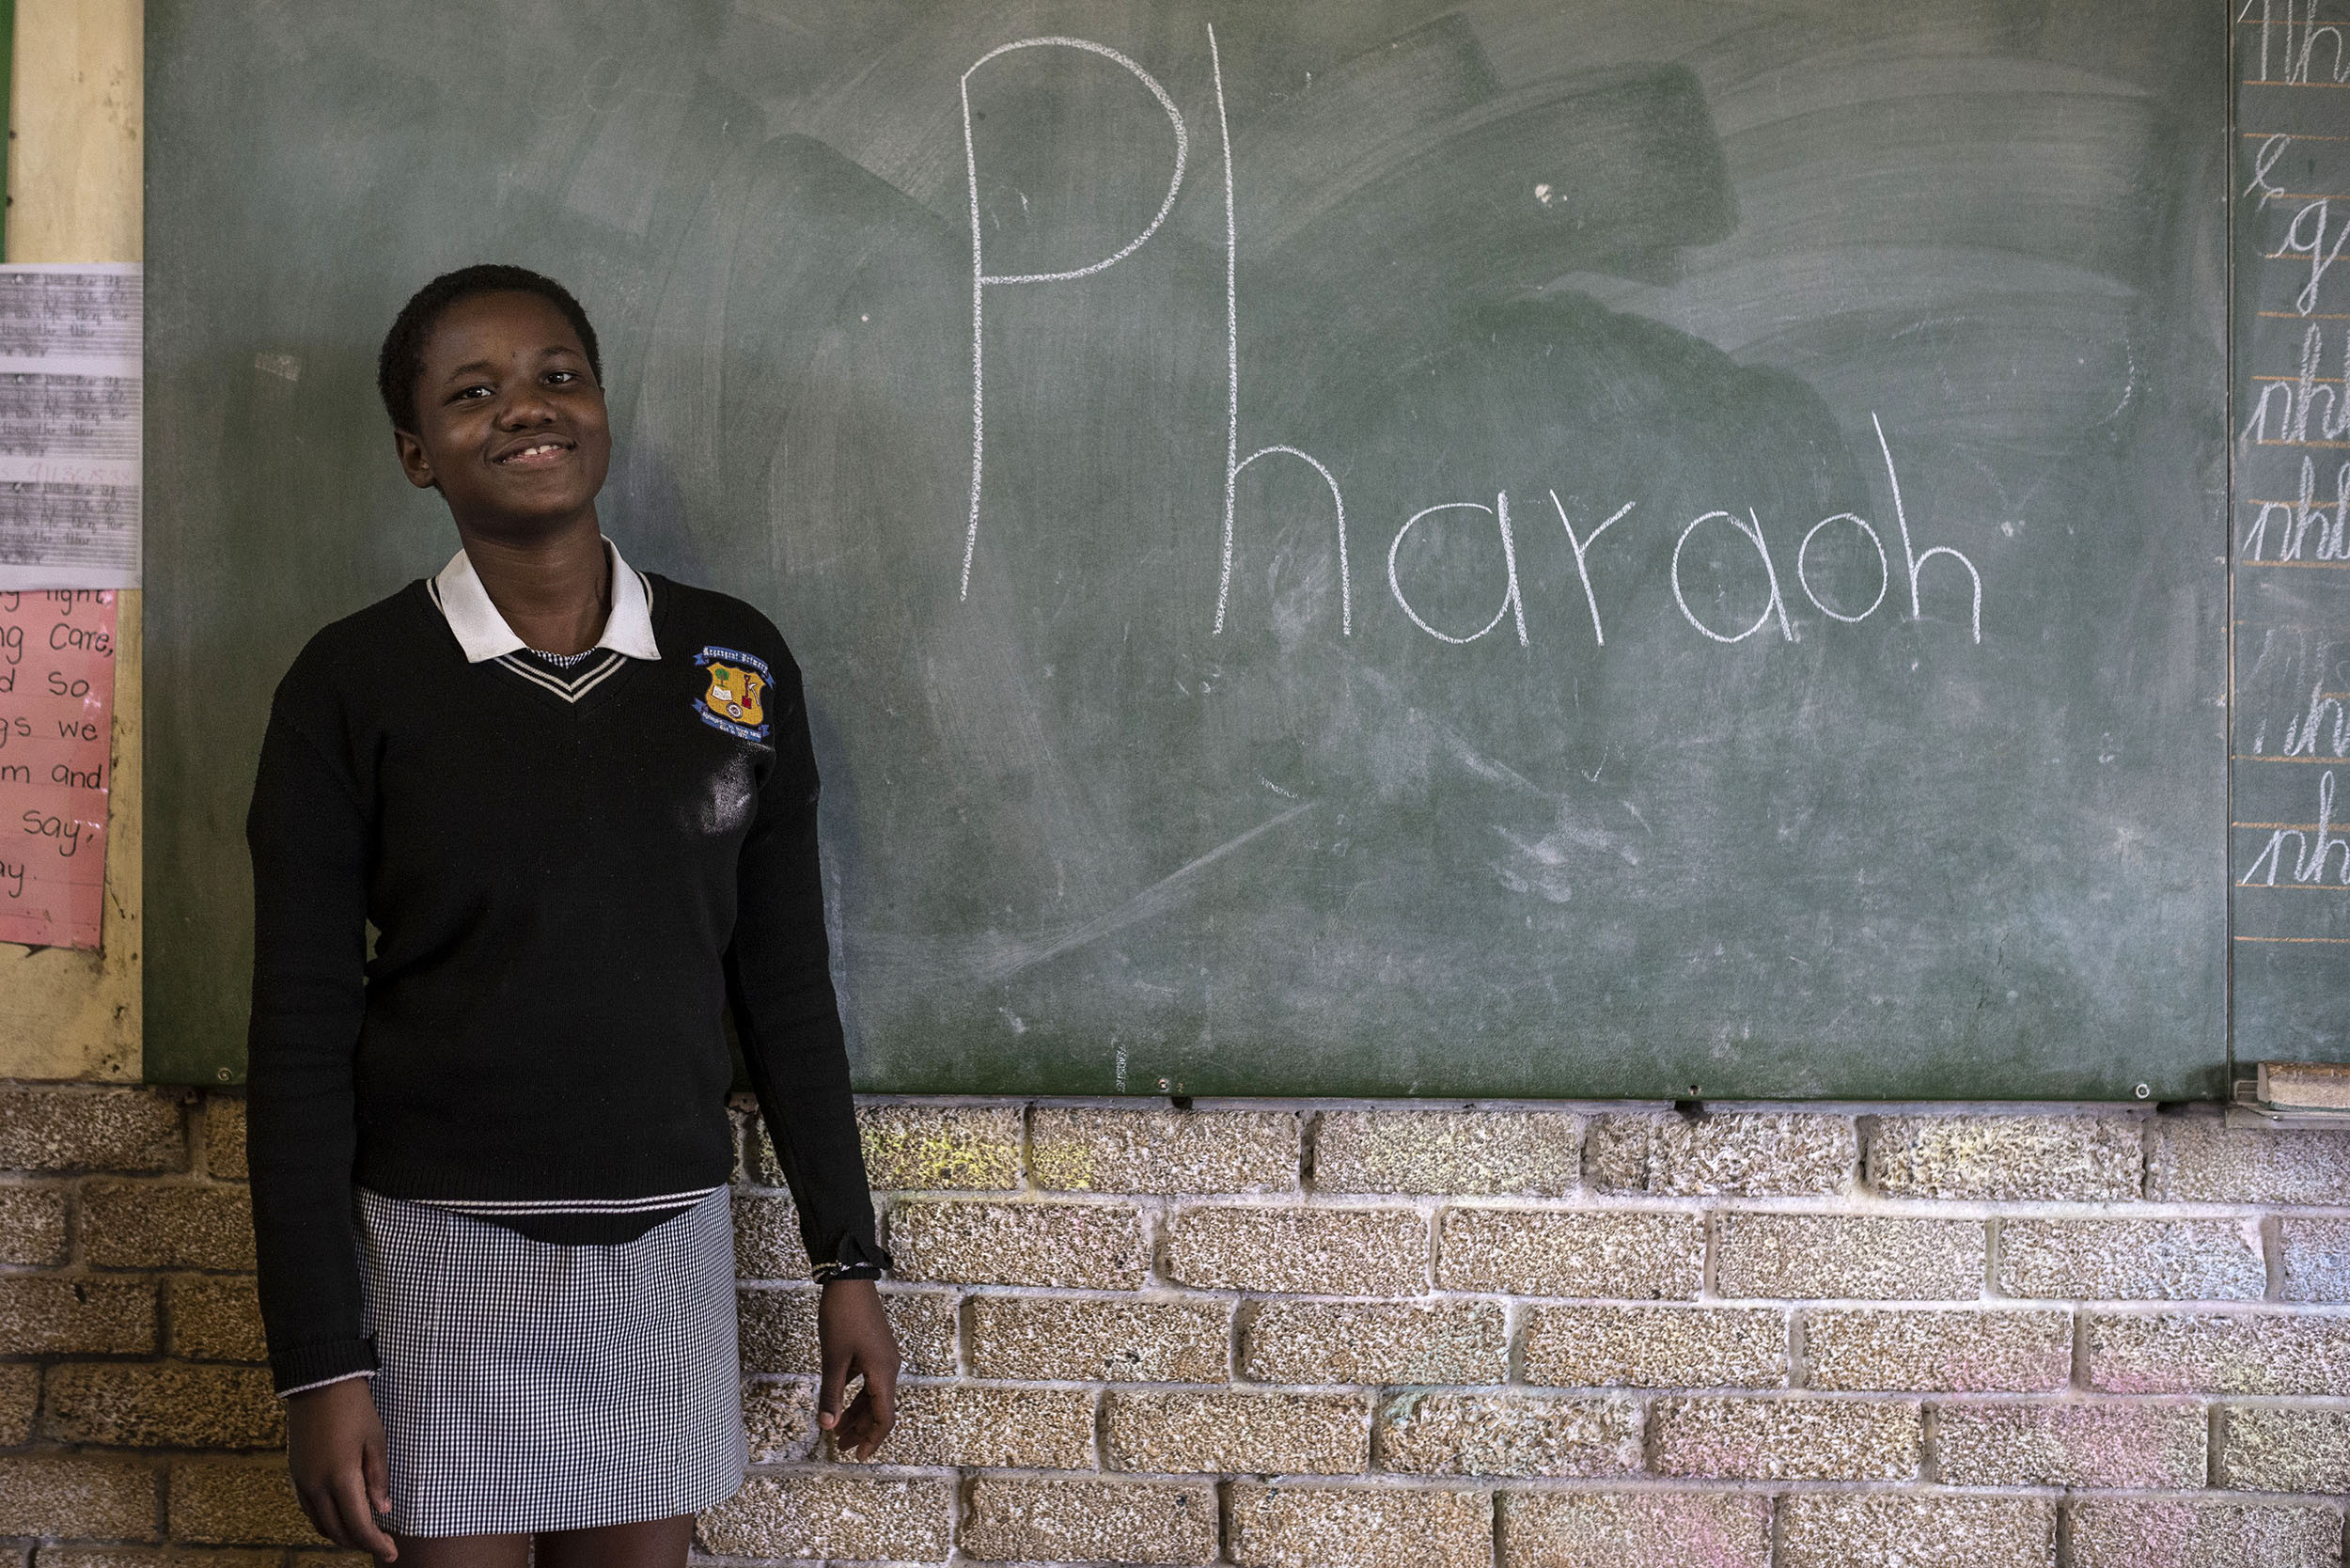 08 August 2018: 'PHARAOH' The word that 13-year-old Hlulani Baloyi had to spell correctly in order to win the national championship of the Mzansi Spelling Bee competition.